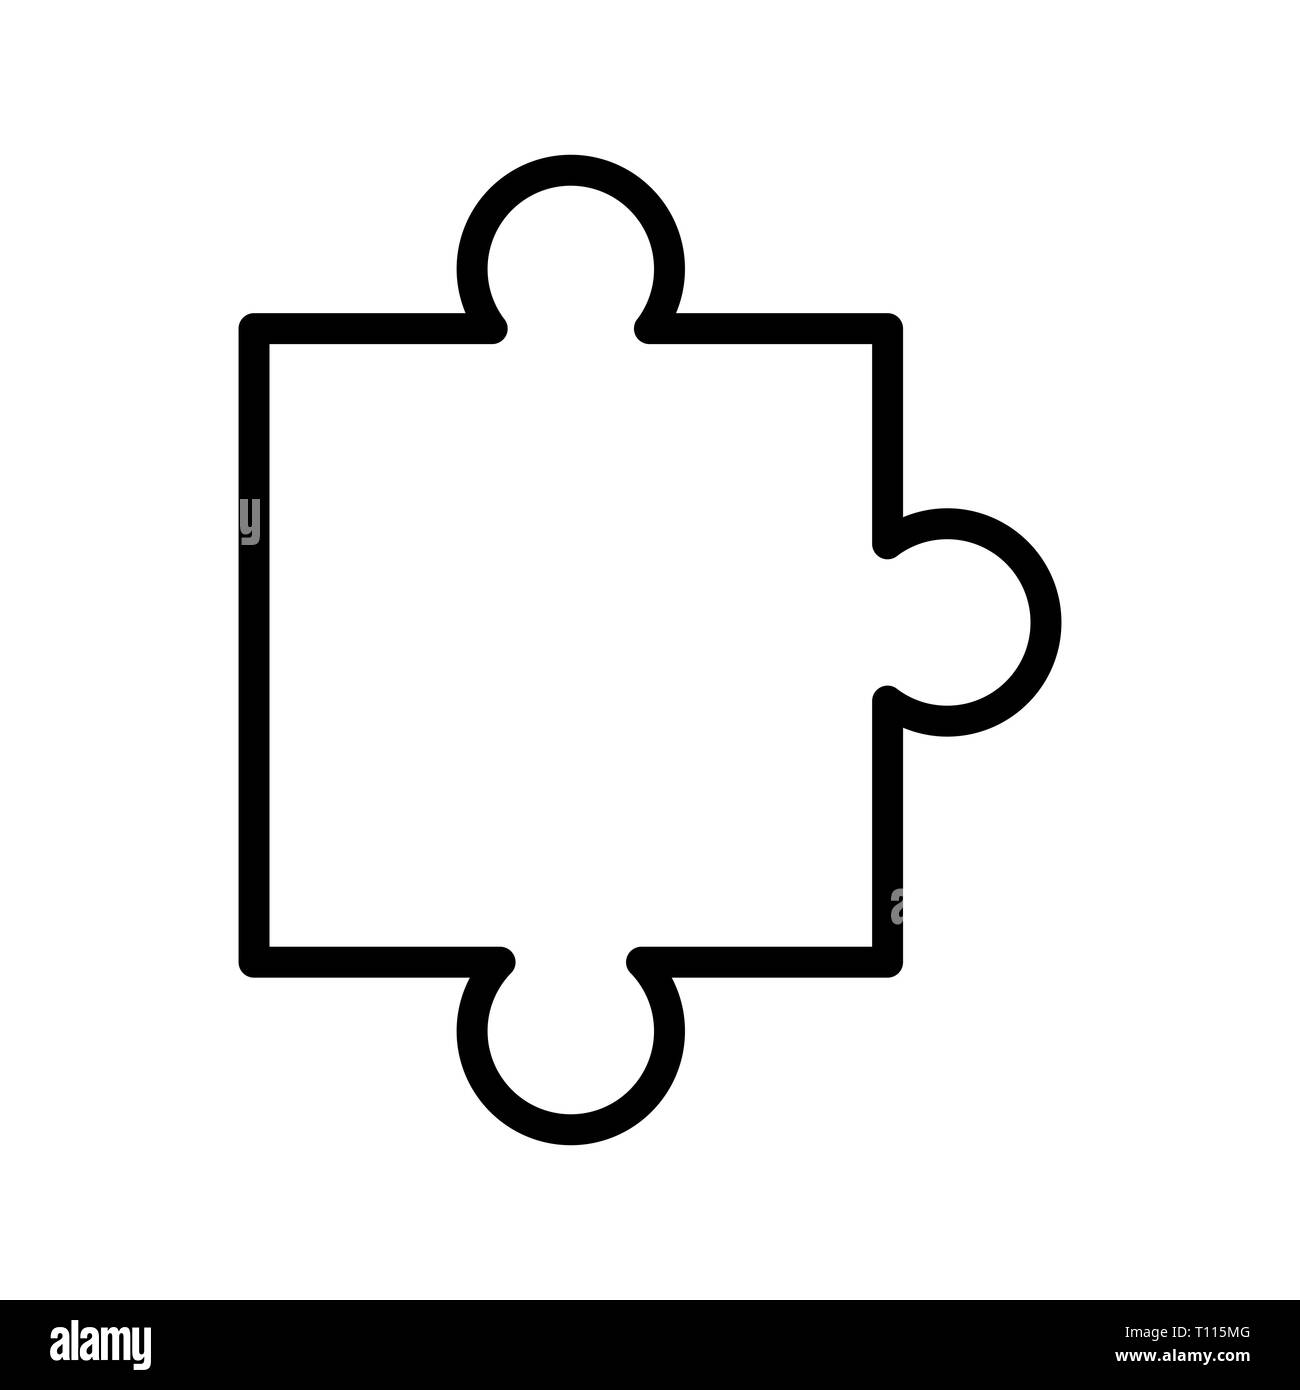 Vector Puzzle Piece Icon - Stock Image